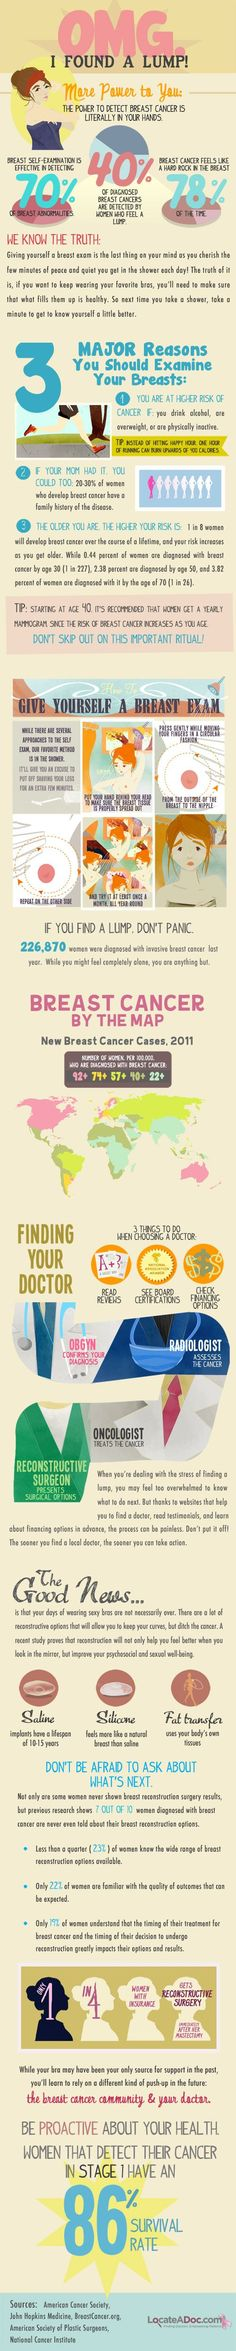 OMG I FOUND A LUMP!  Infographic: Breast Self Exam and Breast Cancer Facts